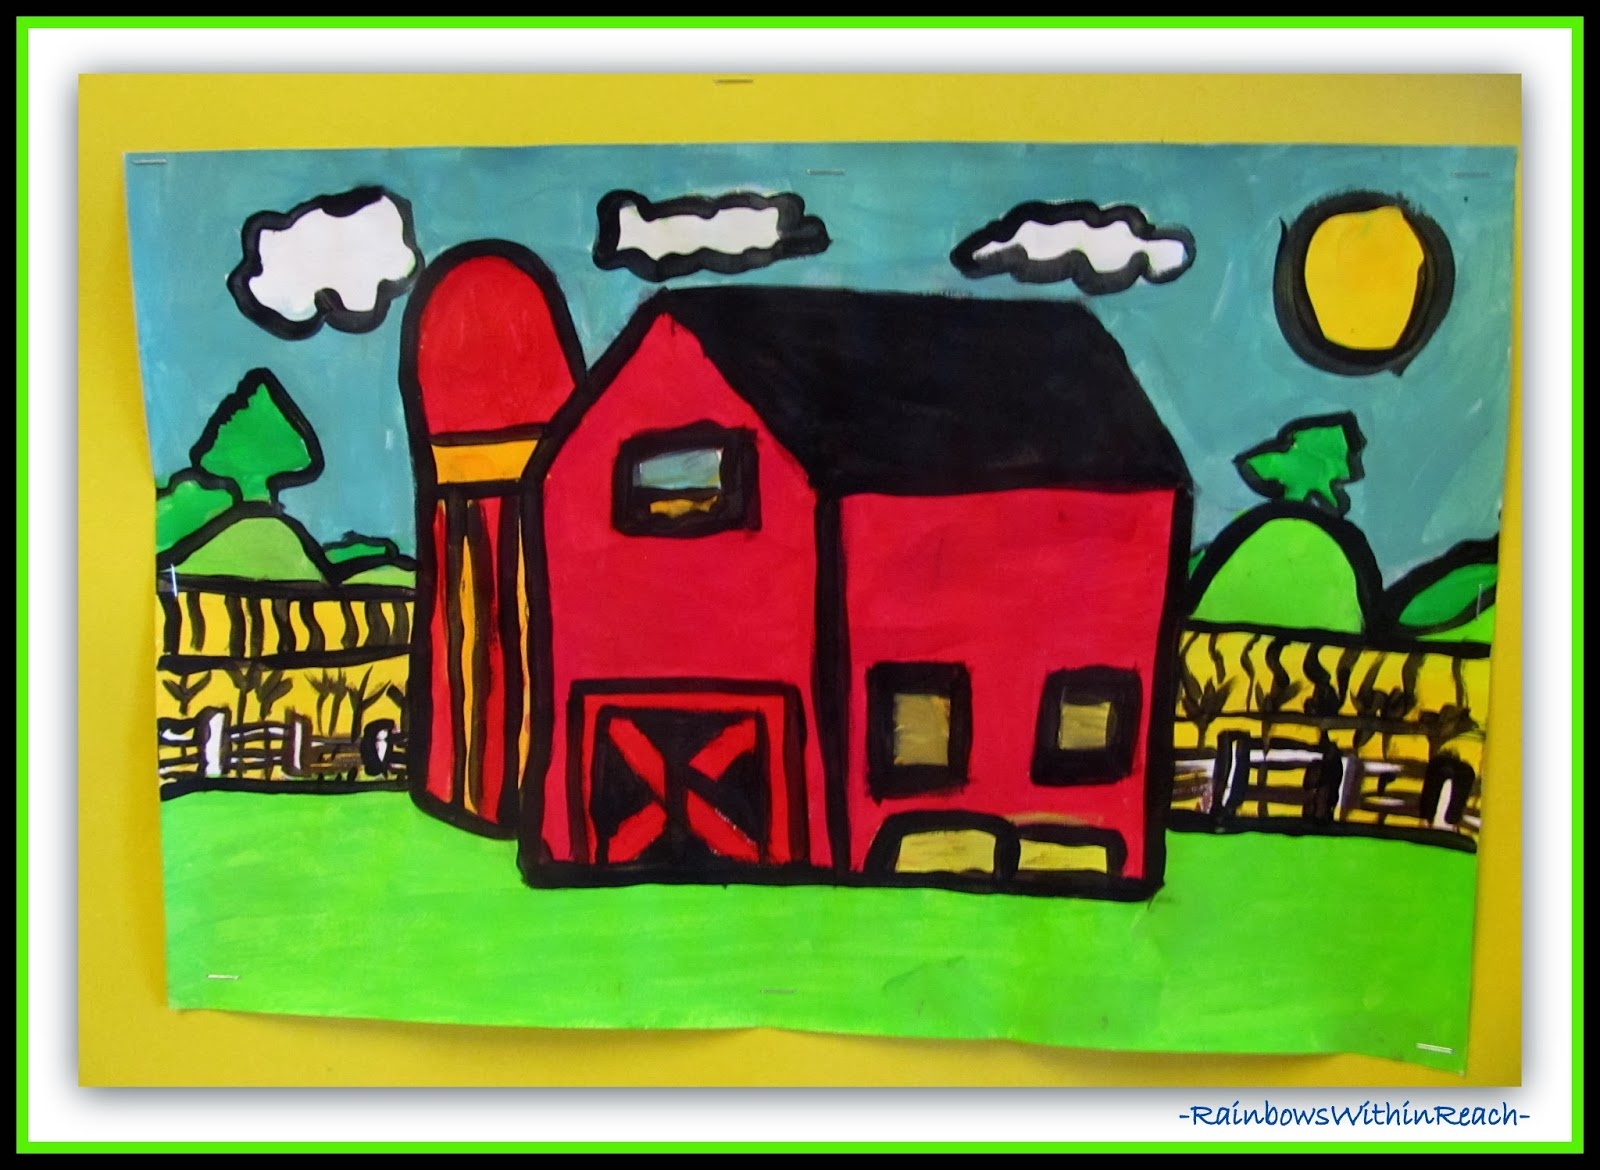 Regional Landscape Painting in Elementary via RainbowsWithinReach